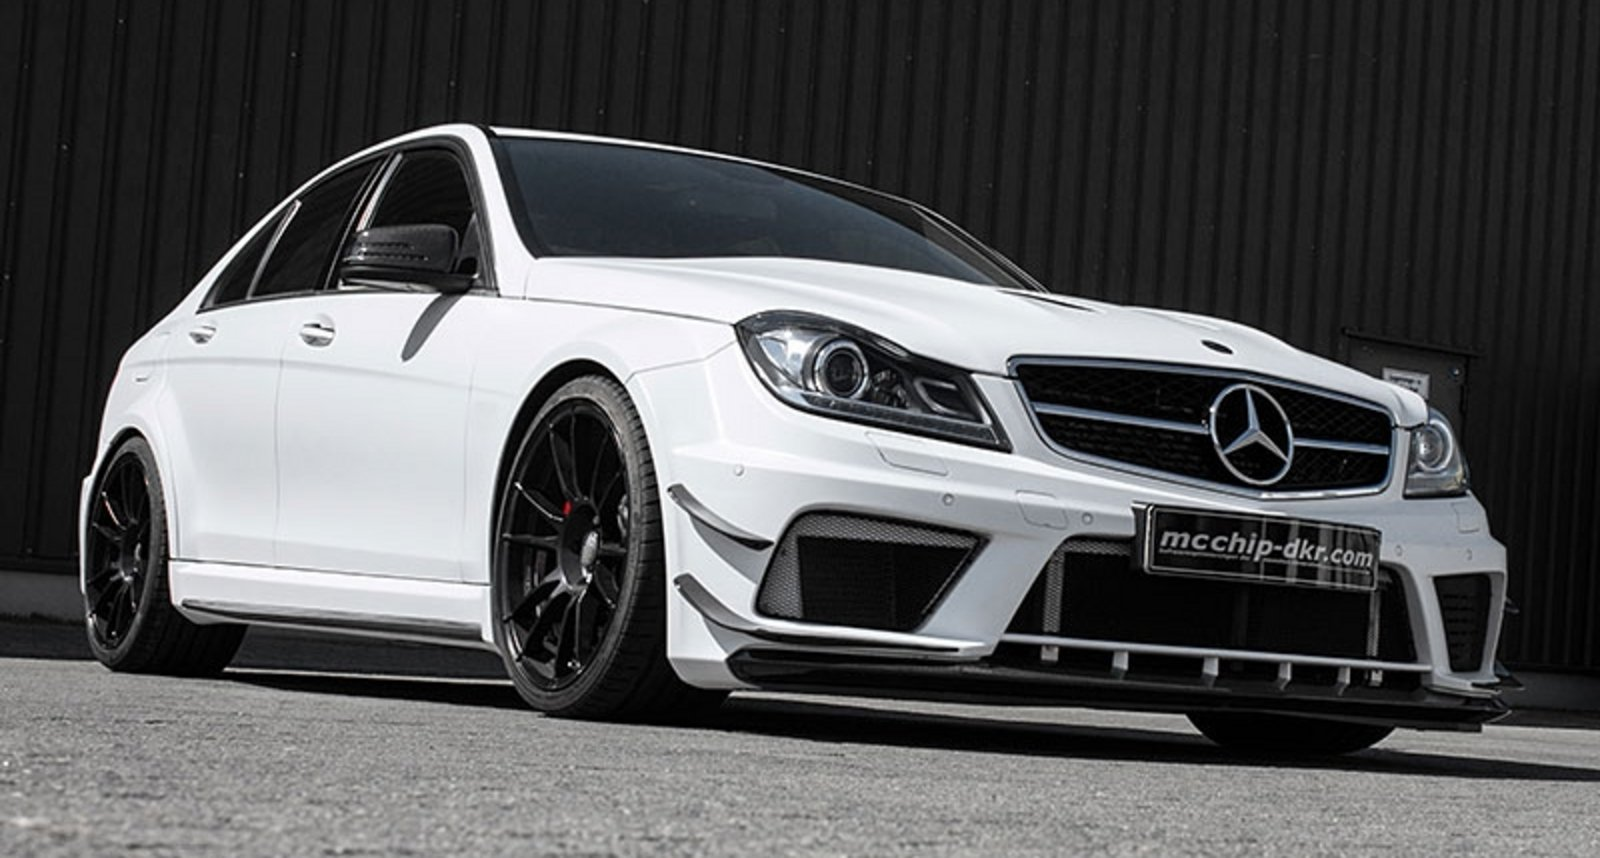 2014 mercedes benz c63 amg mc8xx by mcchip dkr review top speed. Black Bedroom Furniture Sets. Home Design Ideas